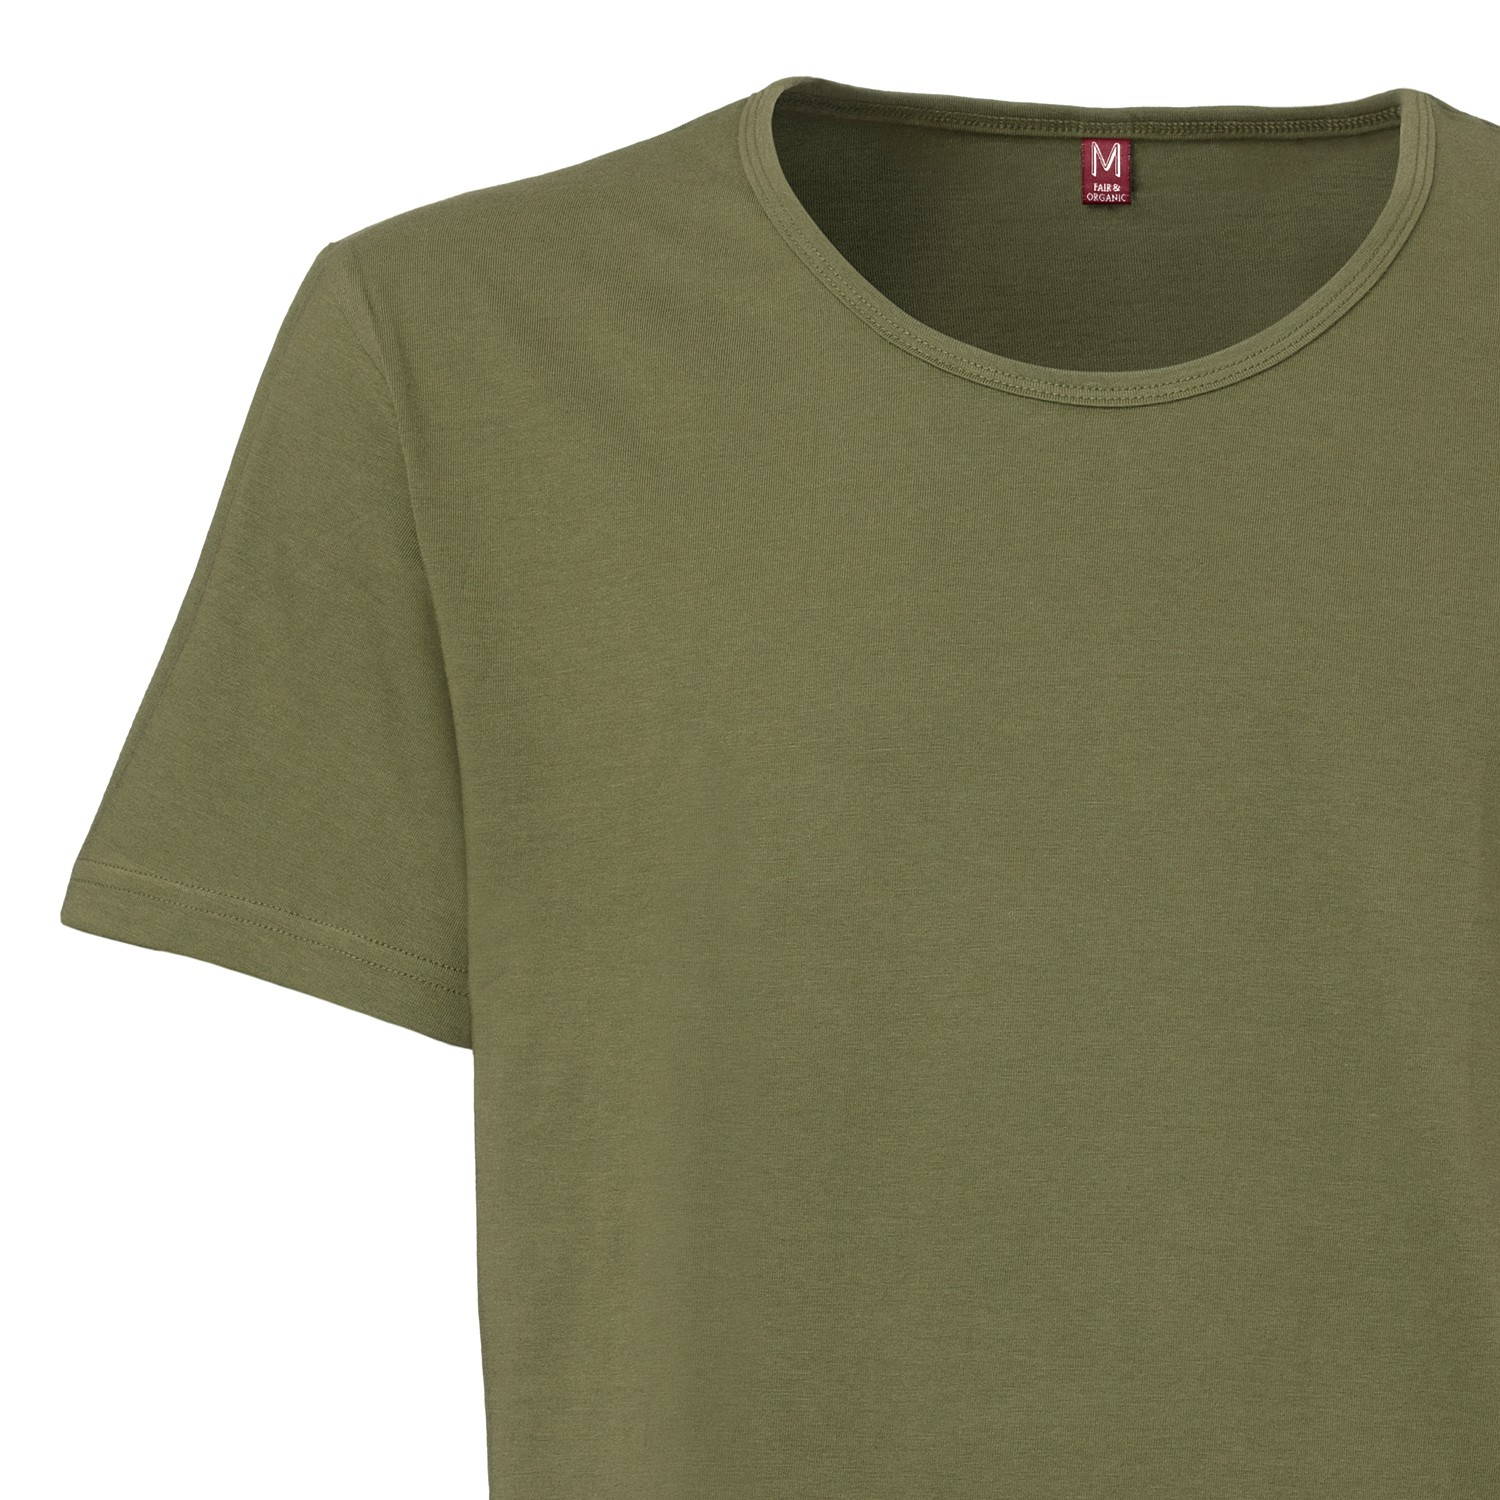 Tt19 wide neck t shirt dark green fairtrade gots gentlemen Fair trade plain t shirts